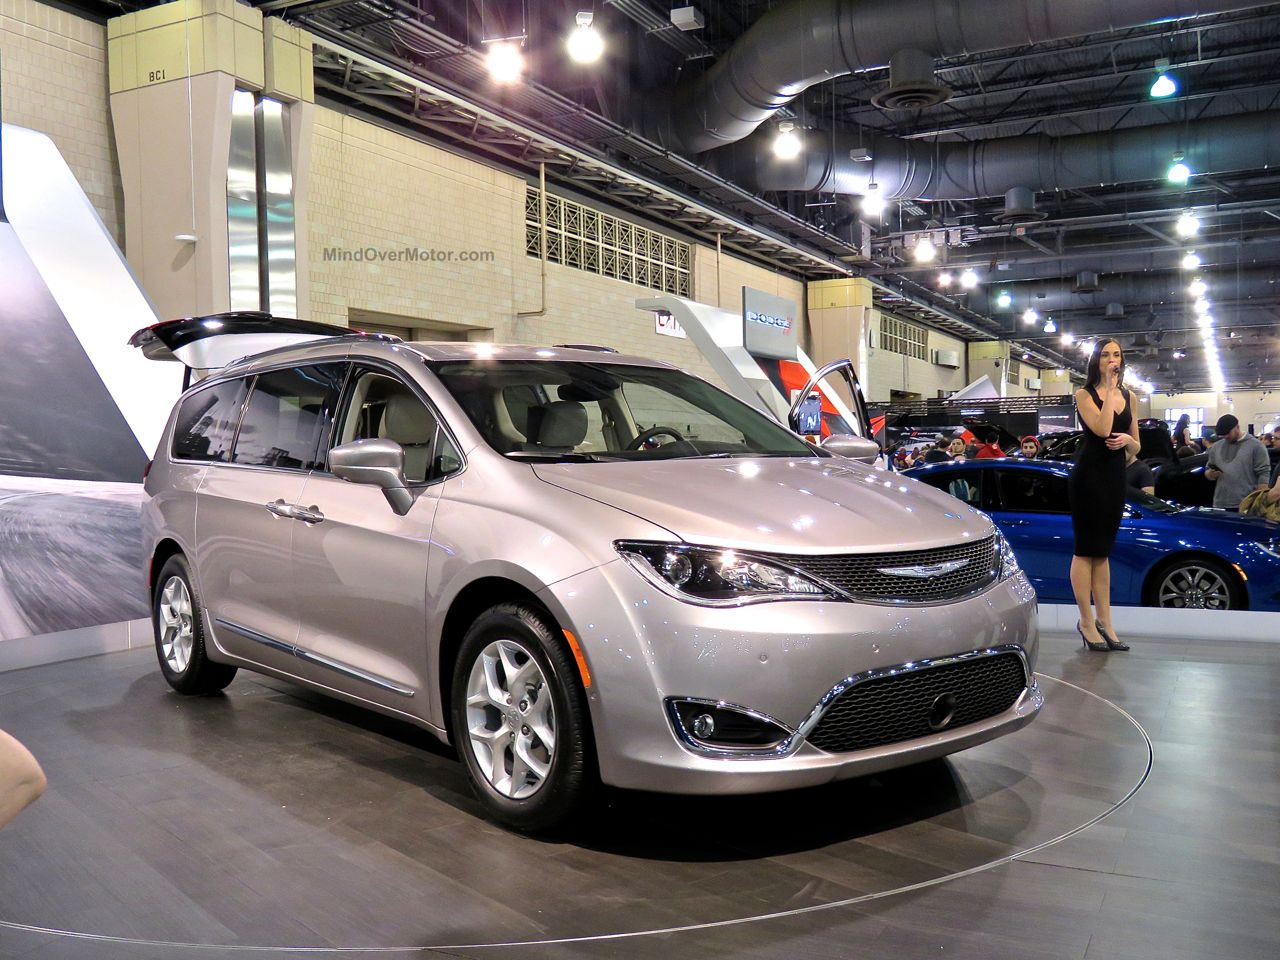 Philly Auto Show 2016 Chrysler Pacifica Minivan